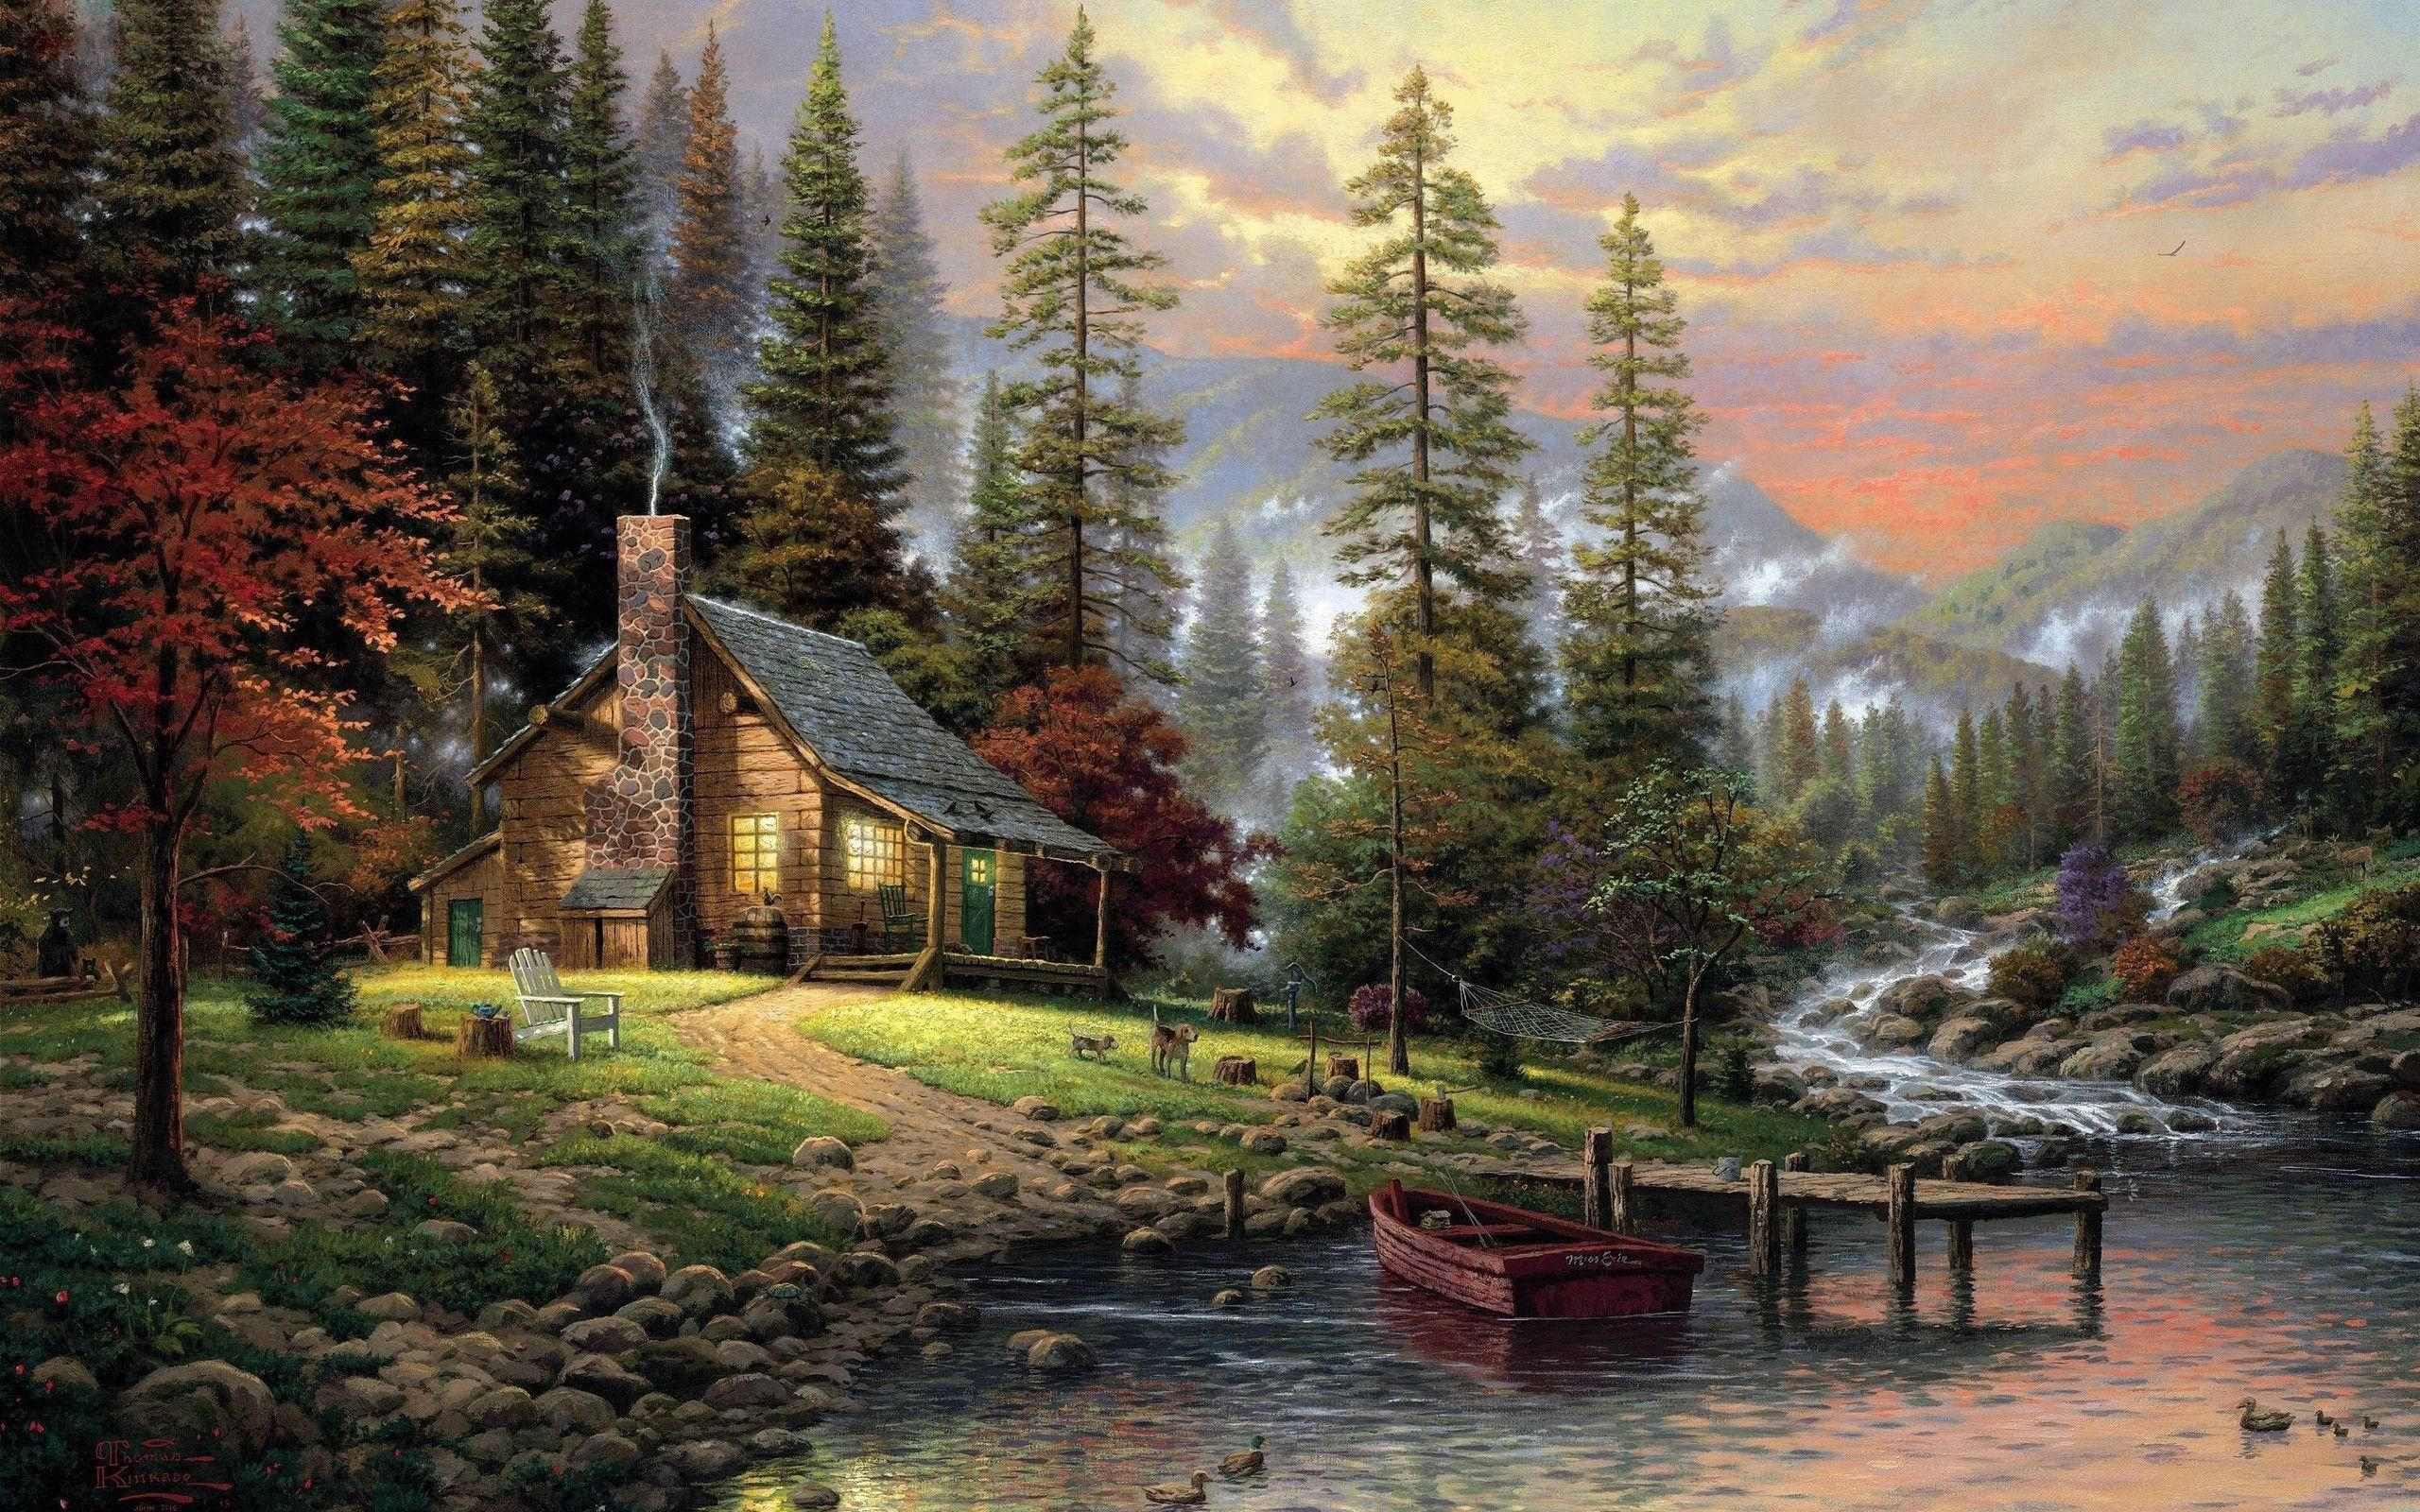 A painting by Bob Ross